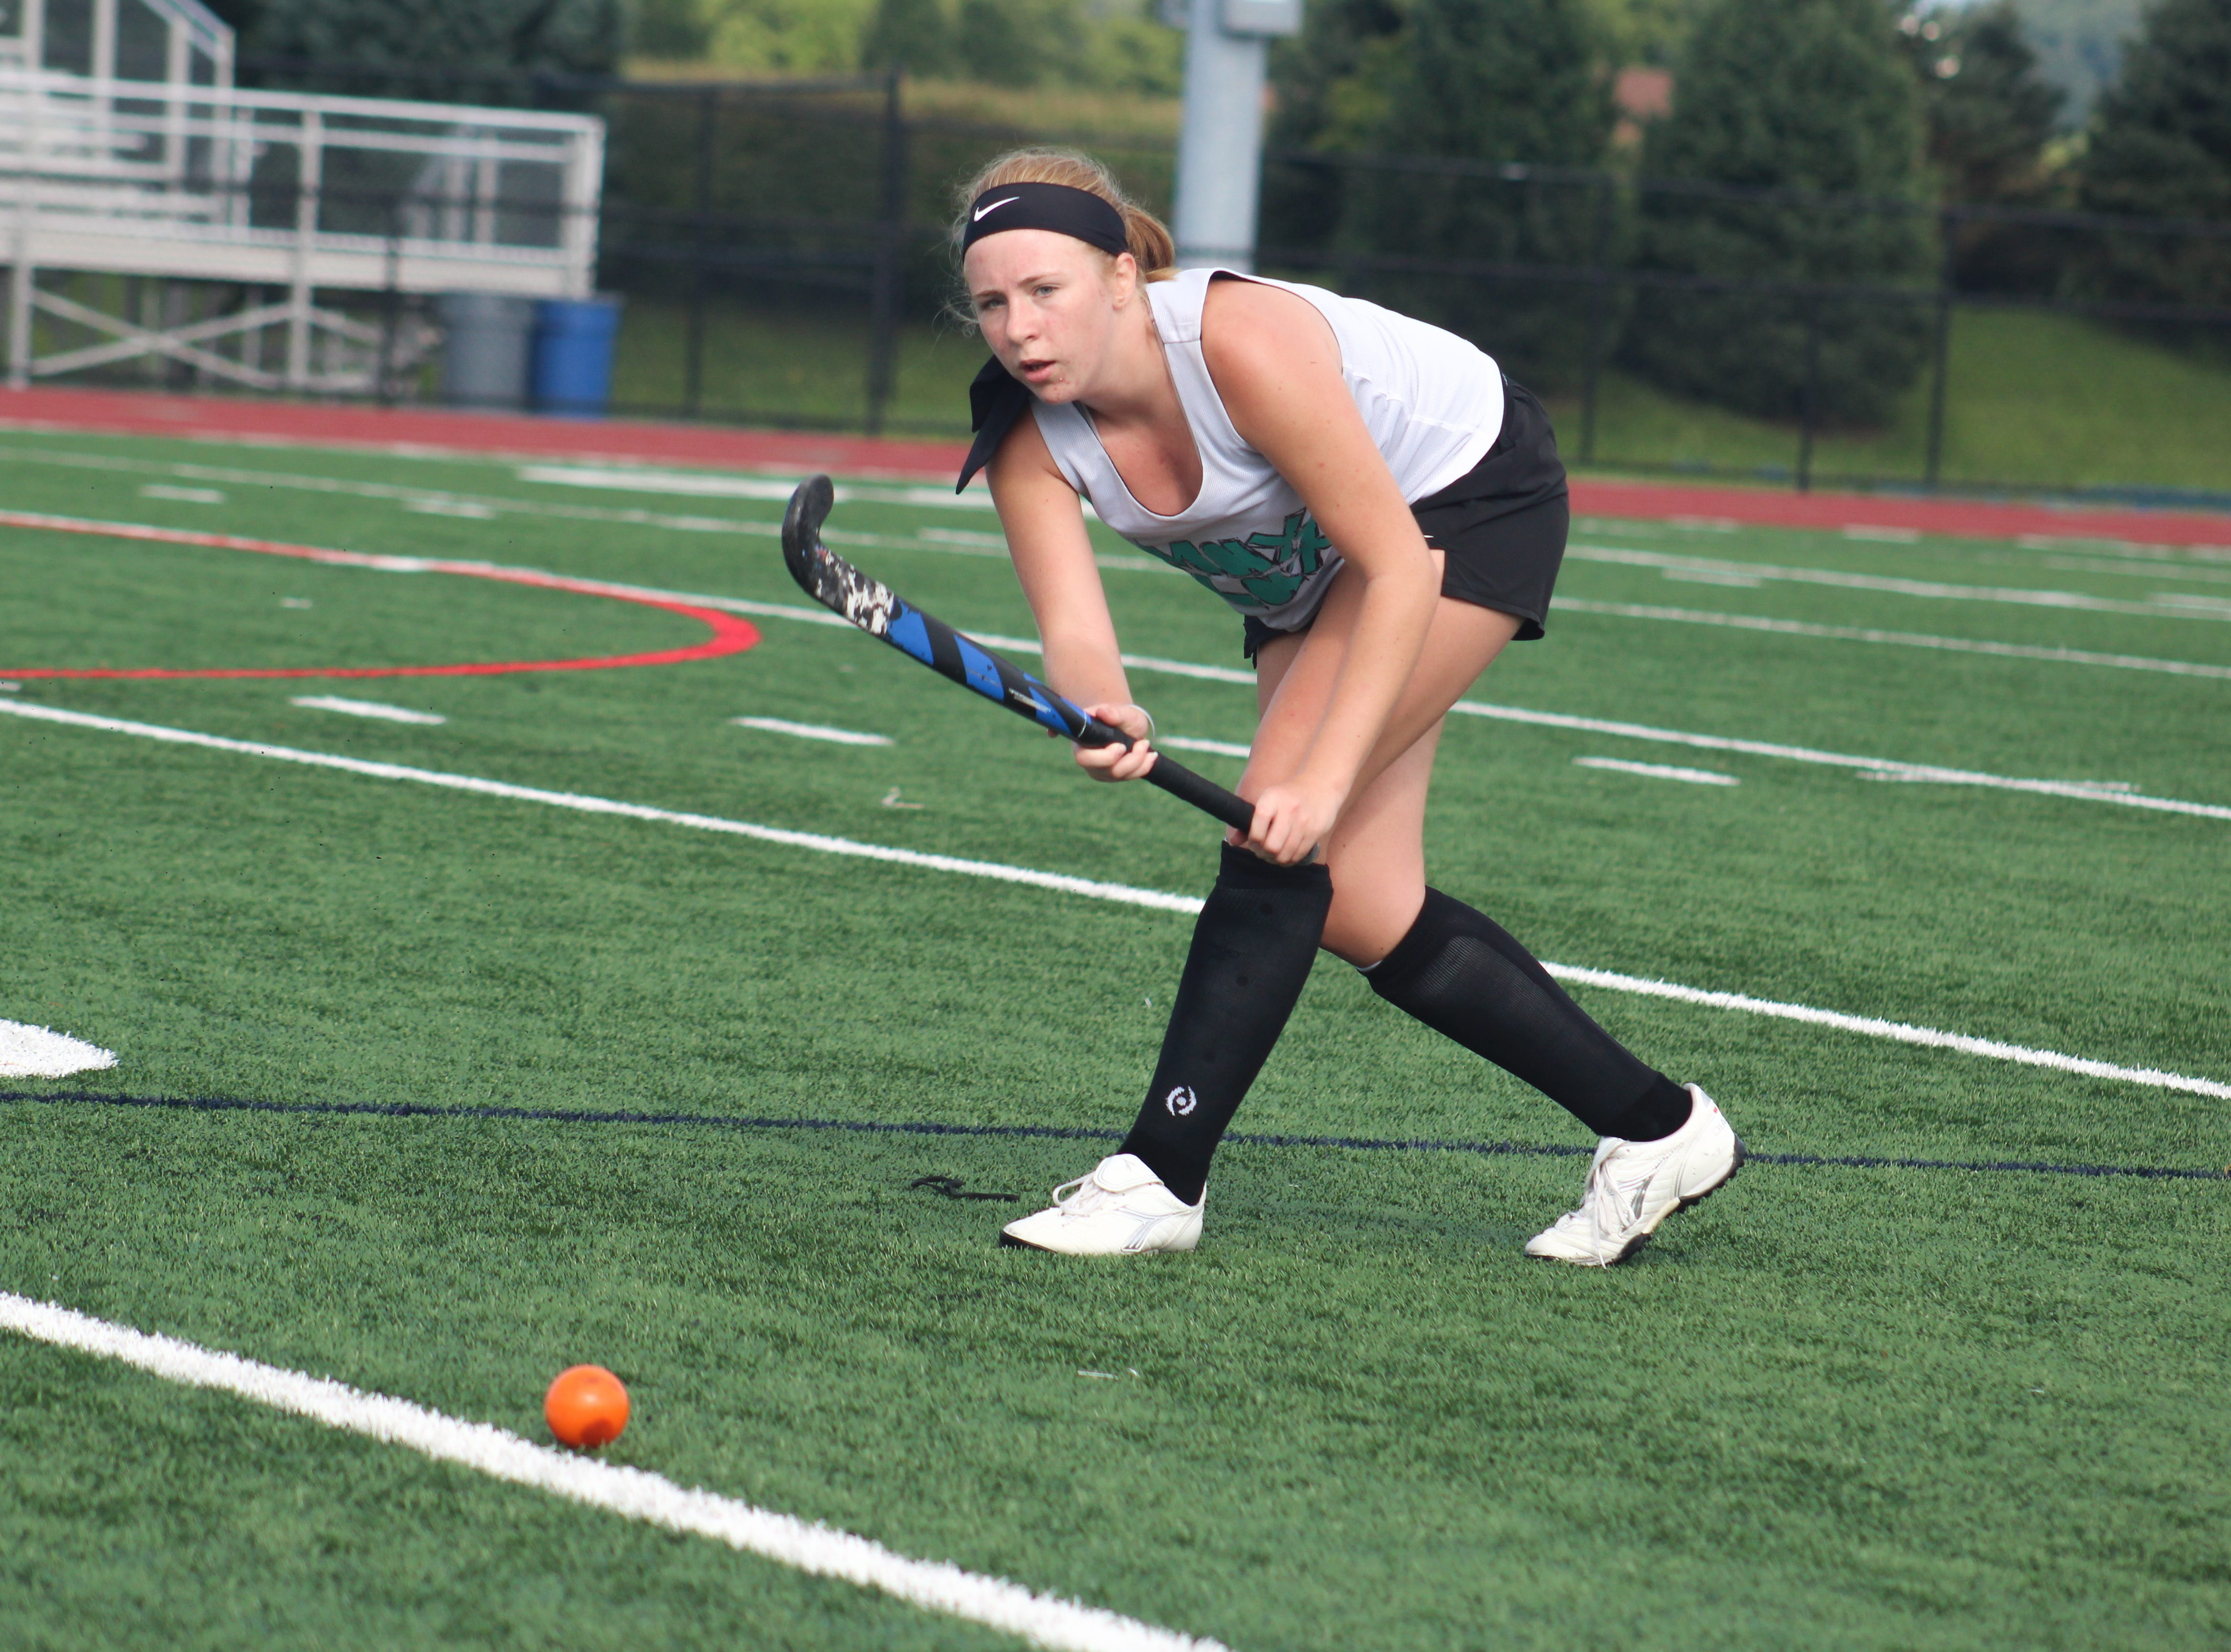 A Central York High School field hockey player runs through a drill during the first day of fall practice.